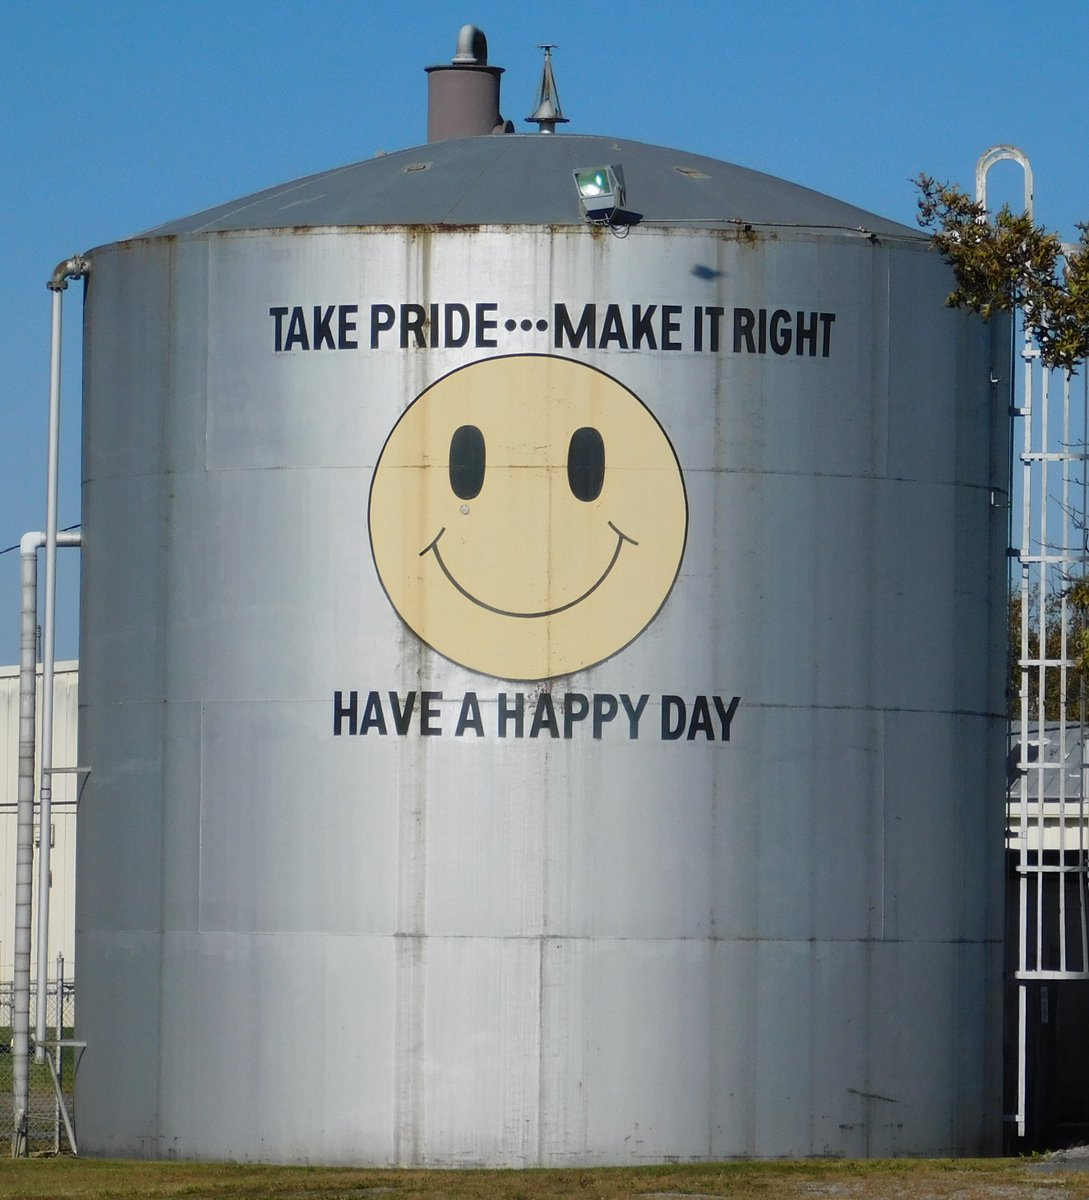 Good advice for a Monday, courtesy of a water tank at the @REOLogistics Solutions Place facility in @WaynesboroCity, VA. Have a happy day! #MondayMotivation